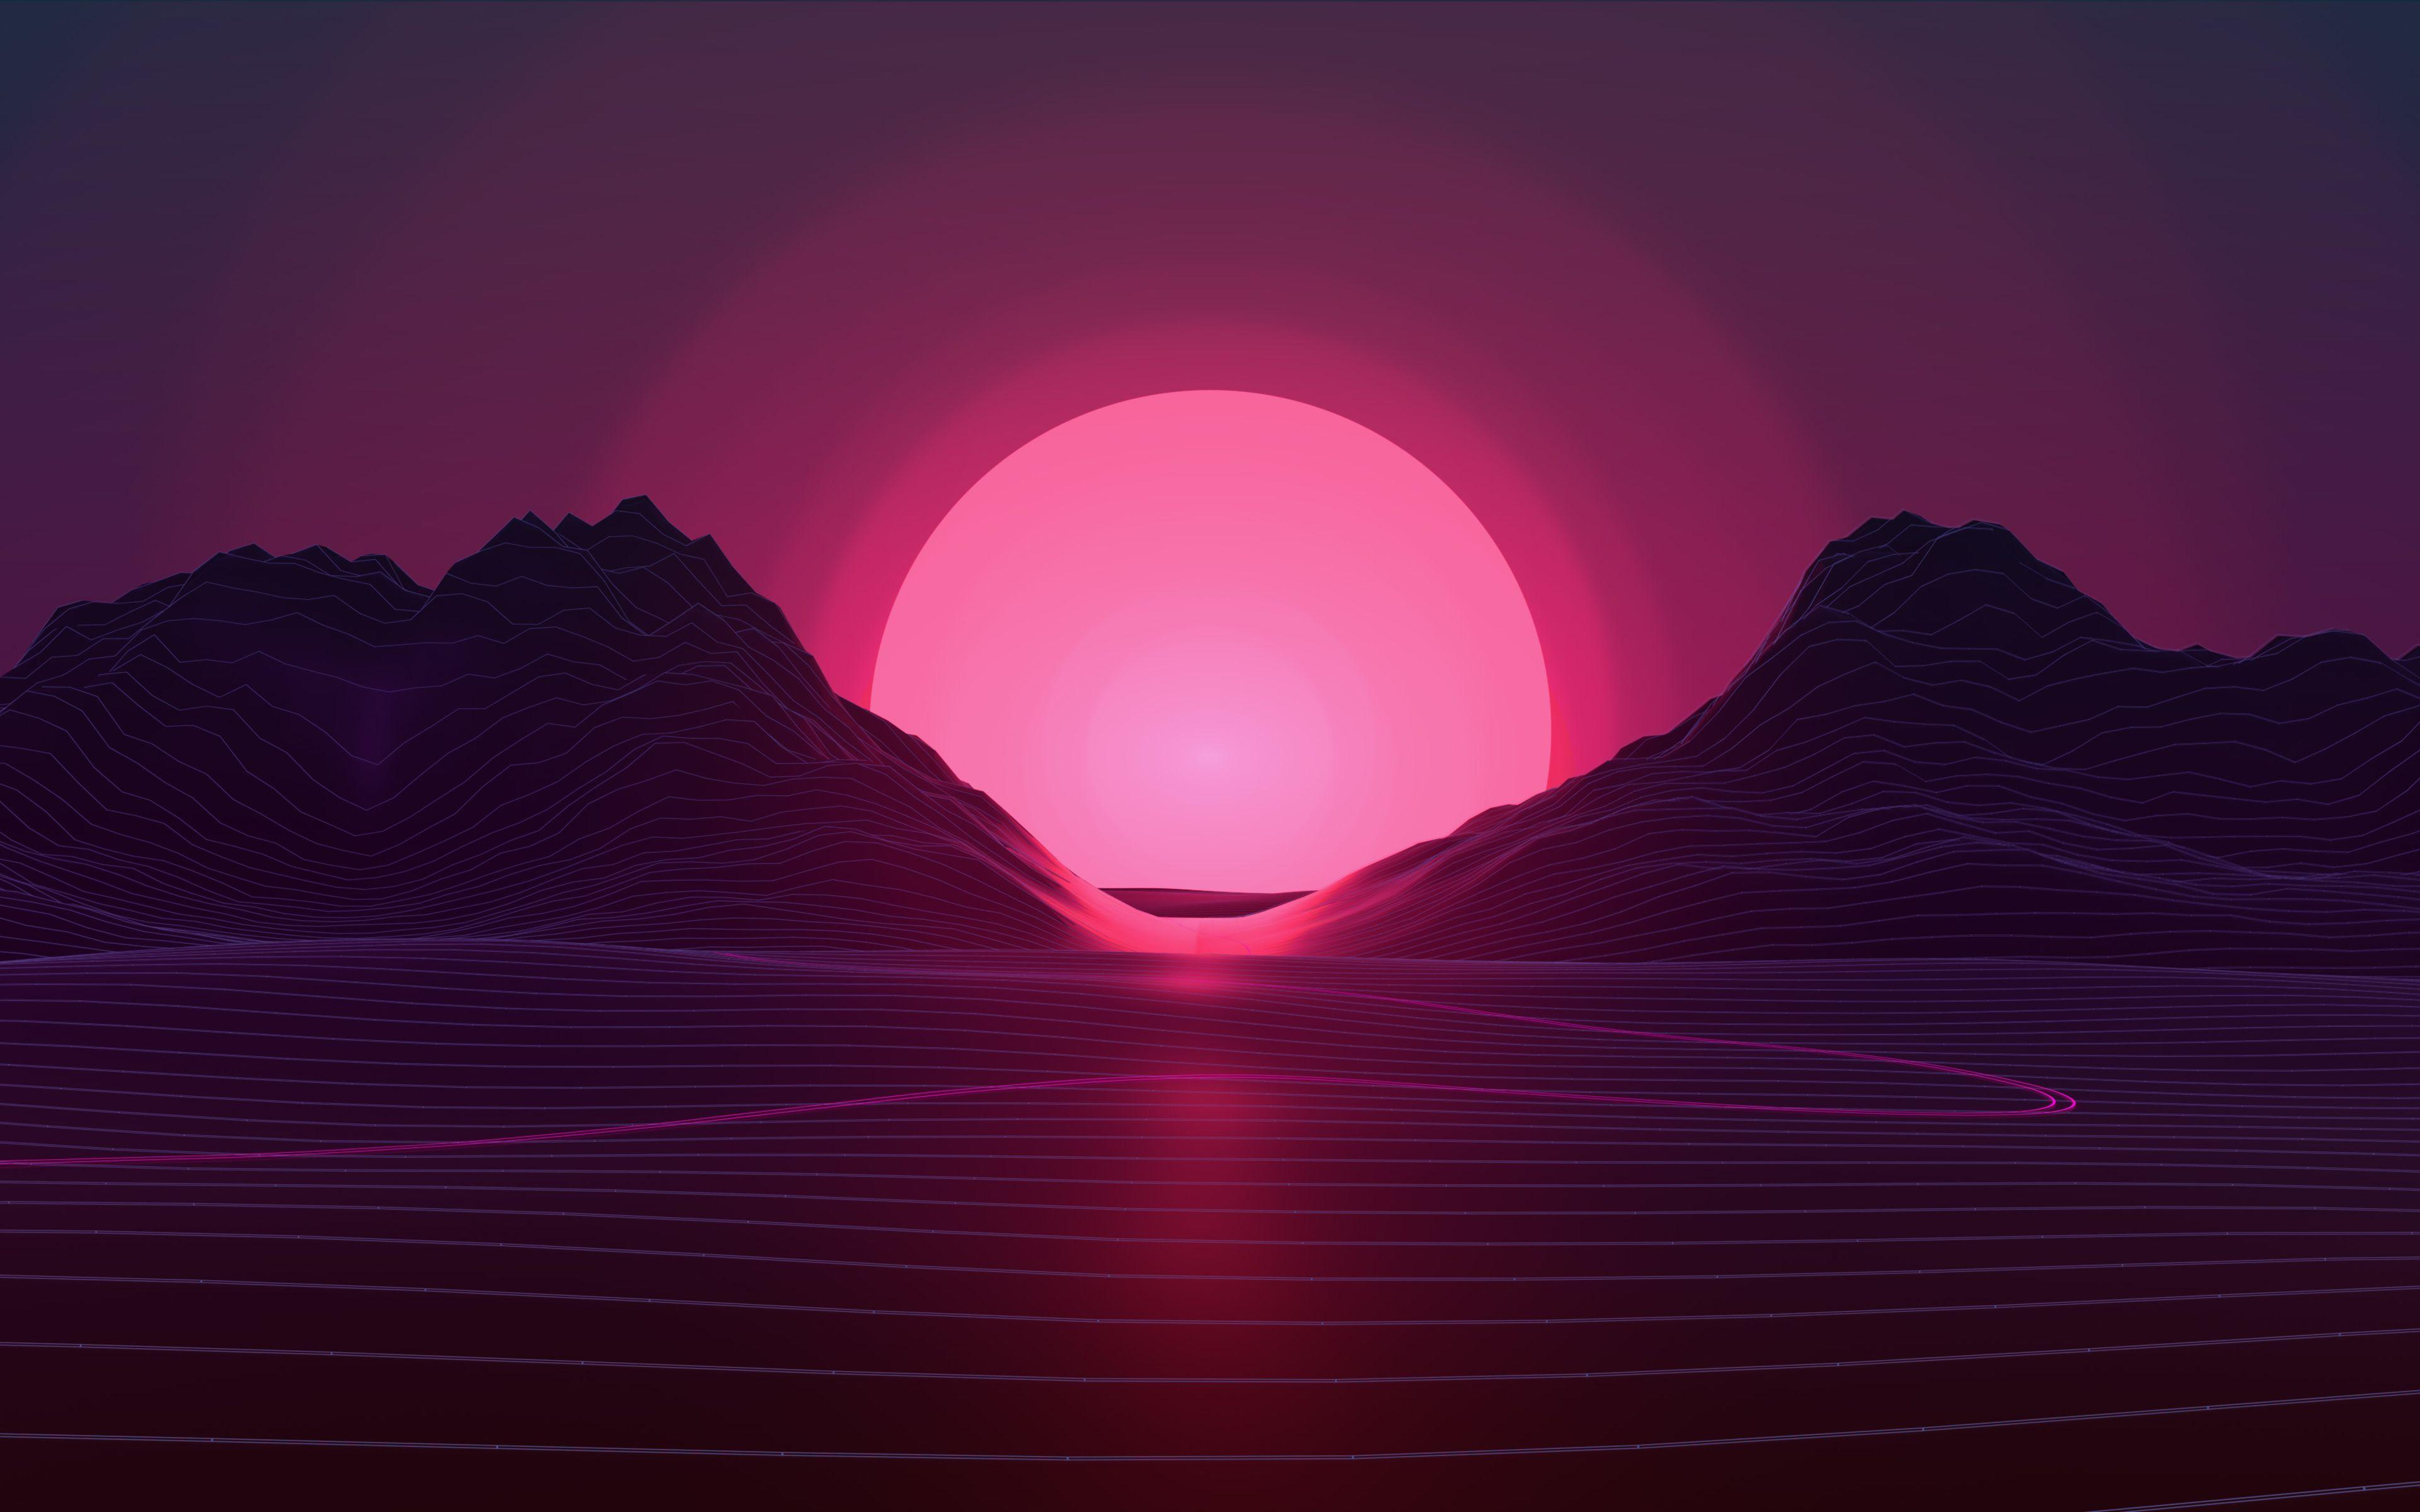 Pink Aesthetic Ultra HD Wallpapers - Wallpaper Cave